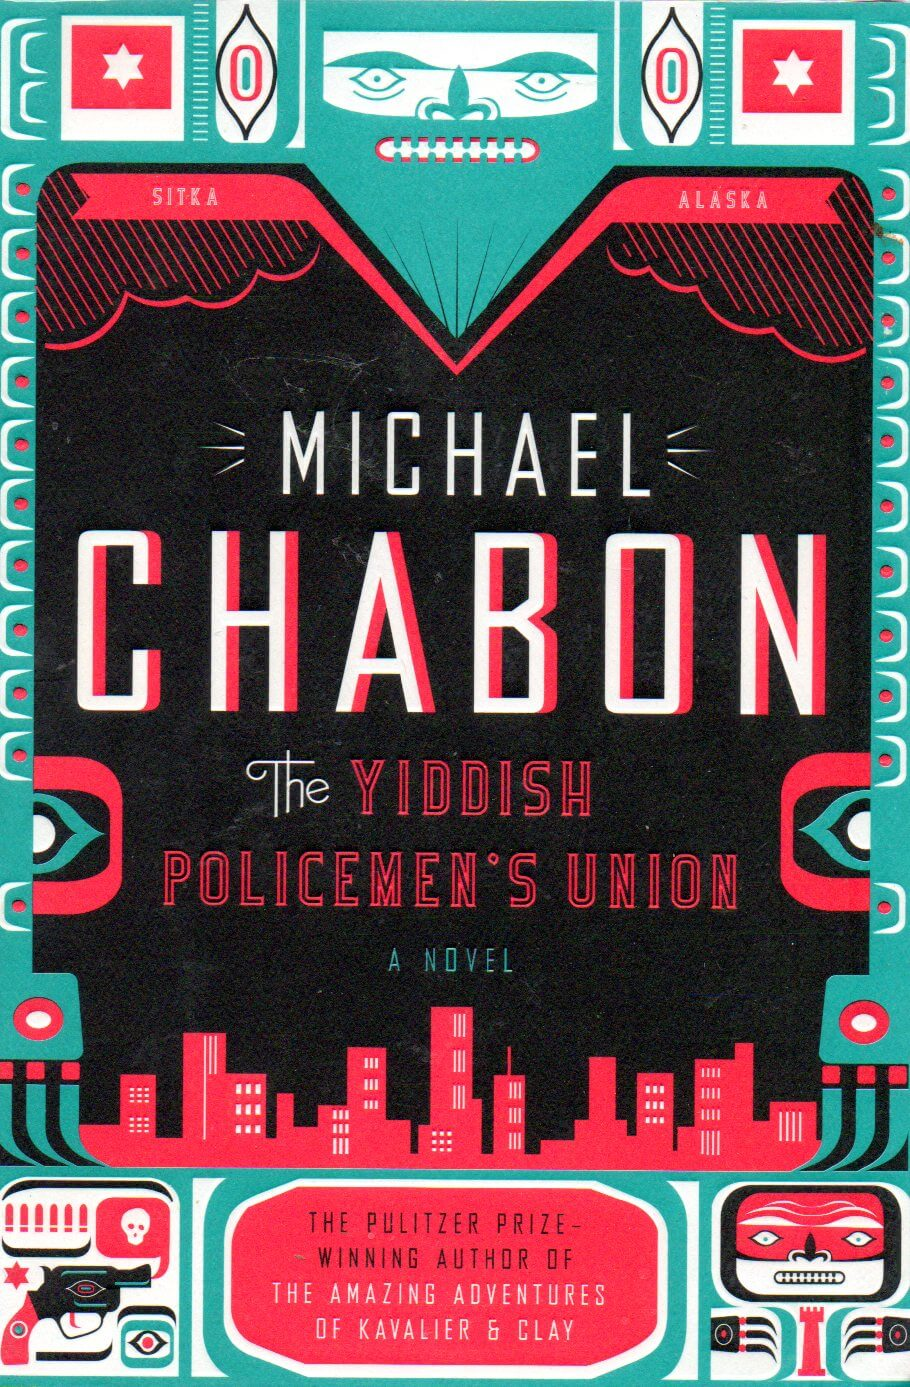 The-Yiddish-Policemen-s-Union